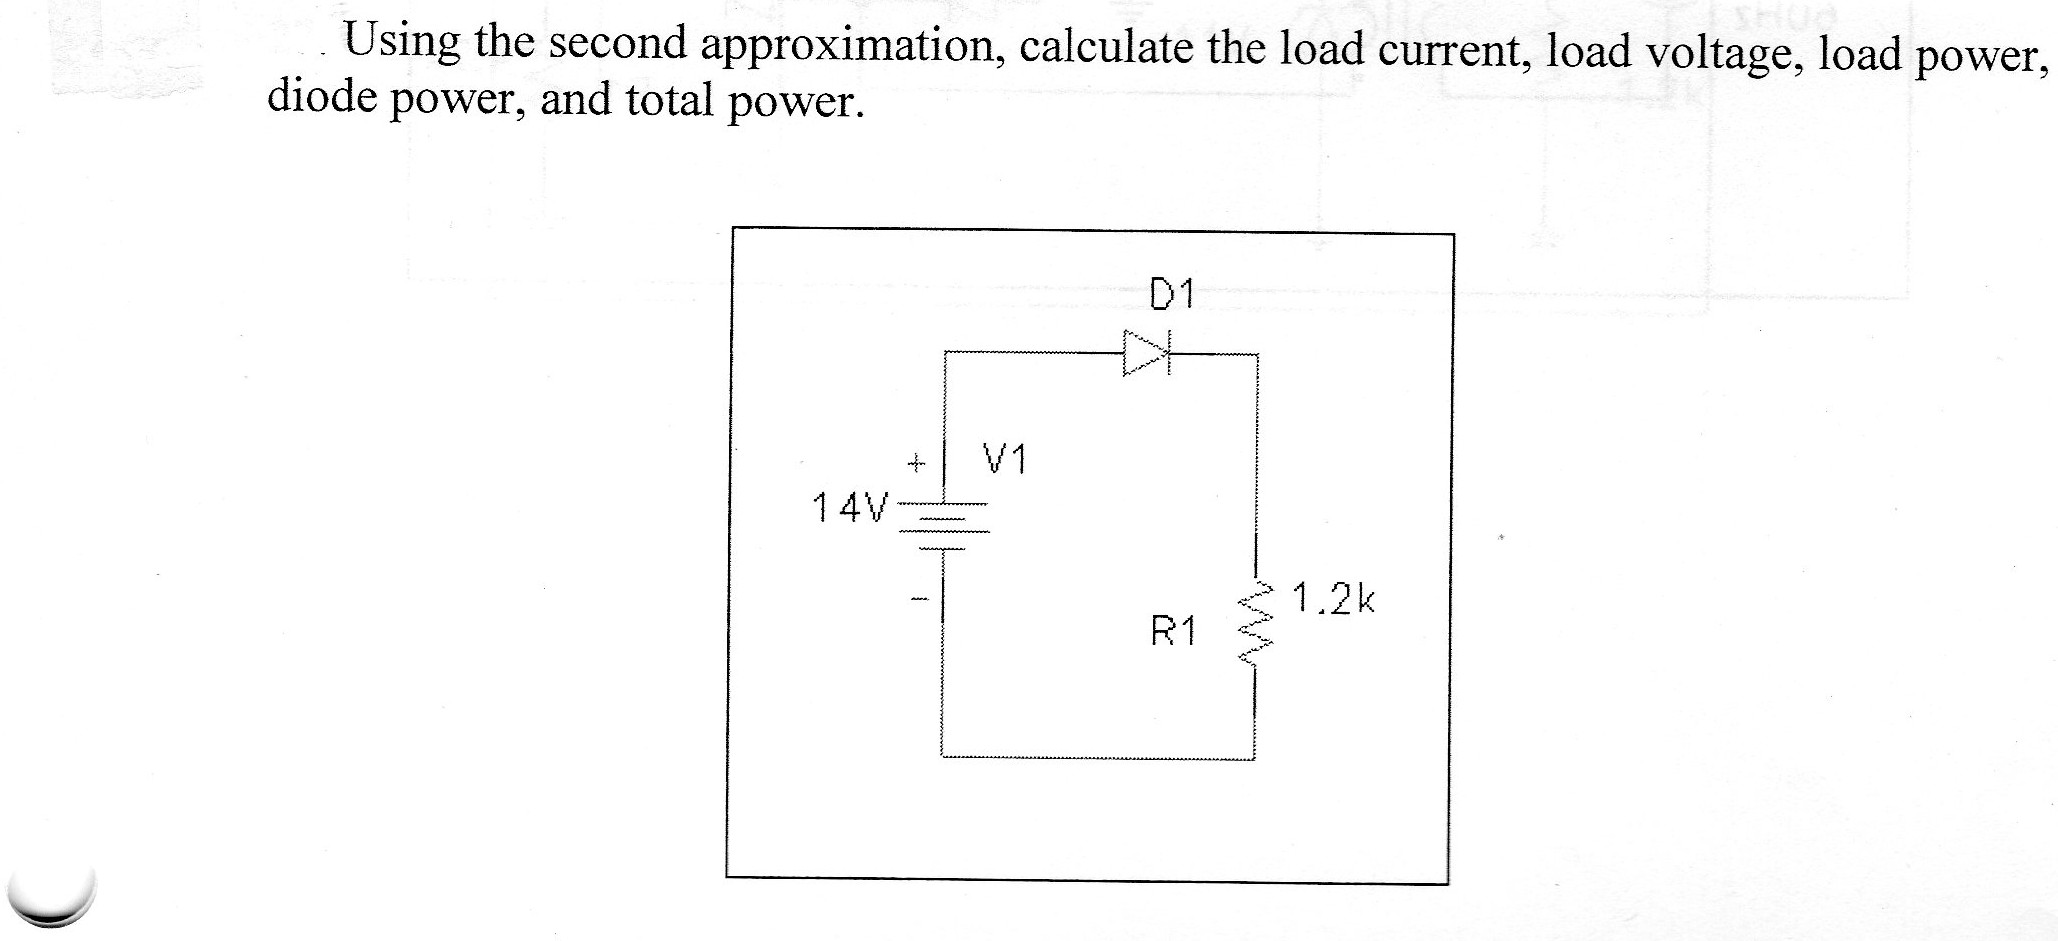 Using the second approximation, calculate the load